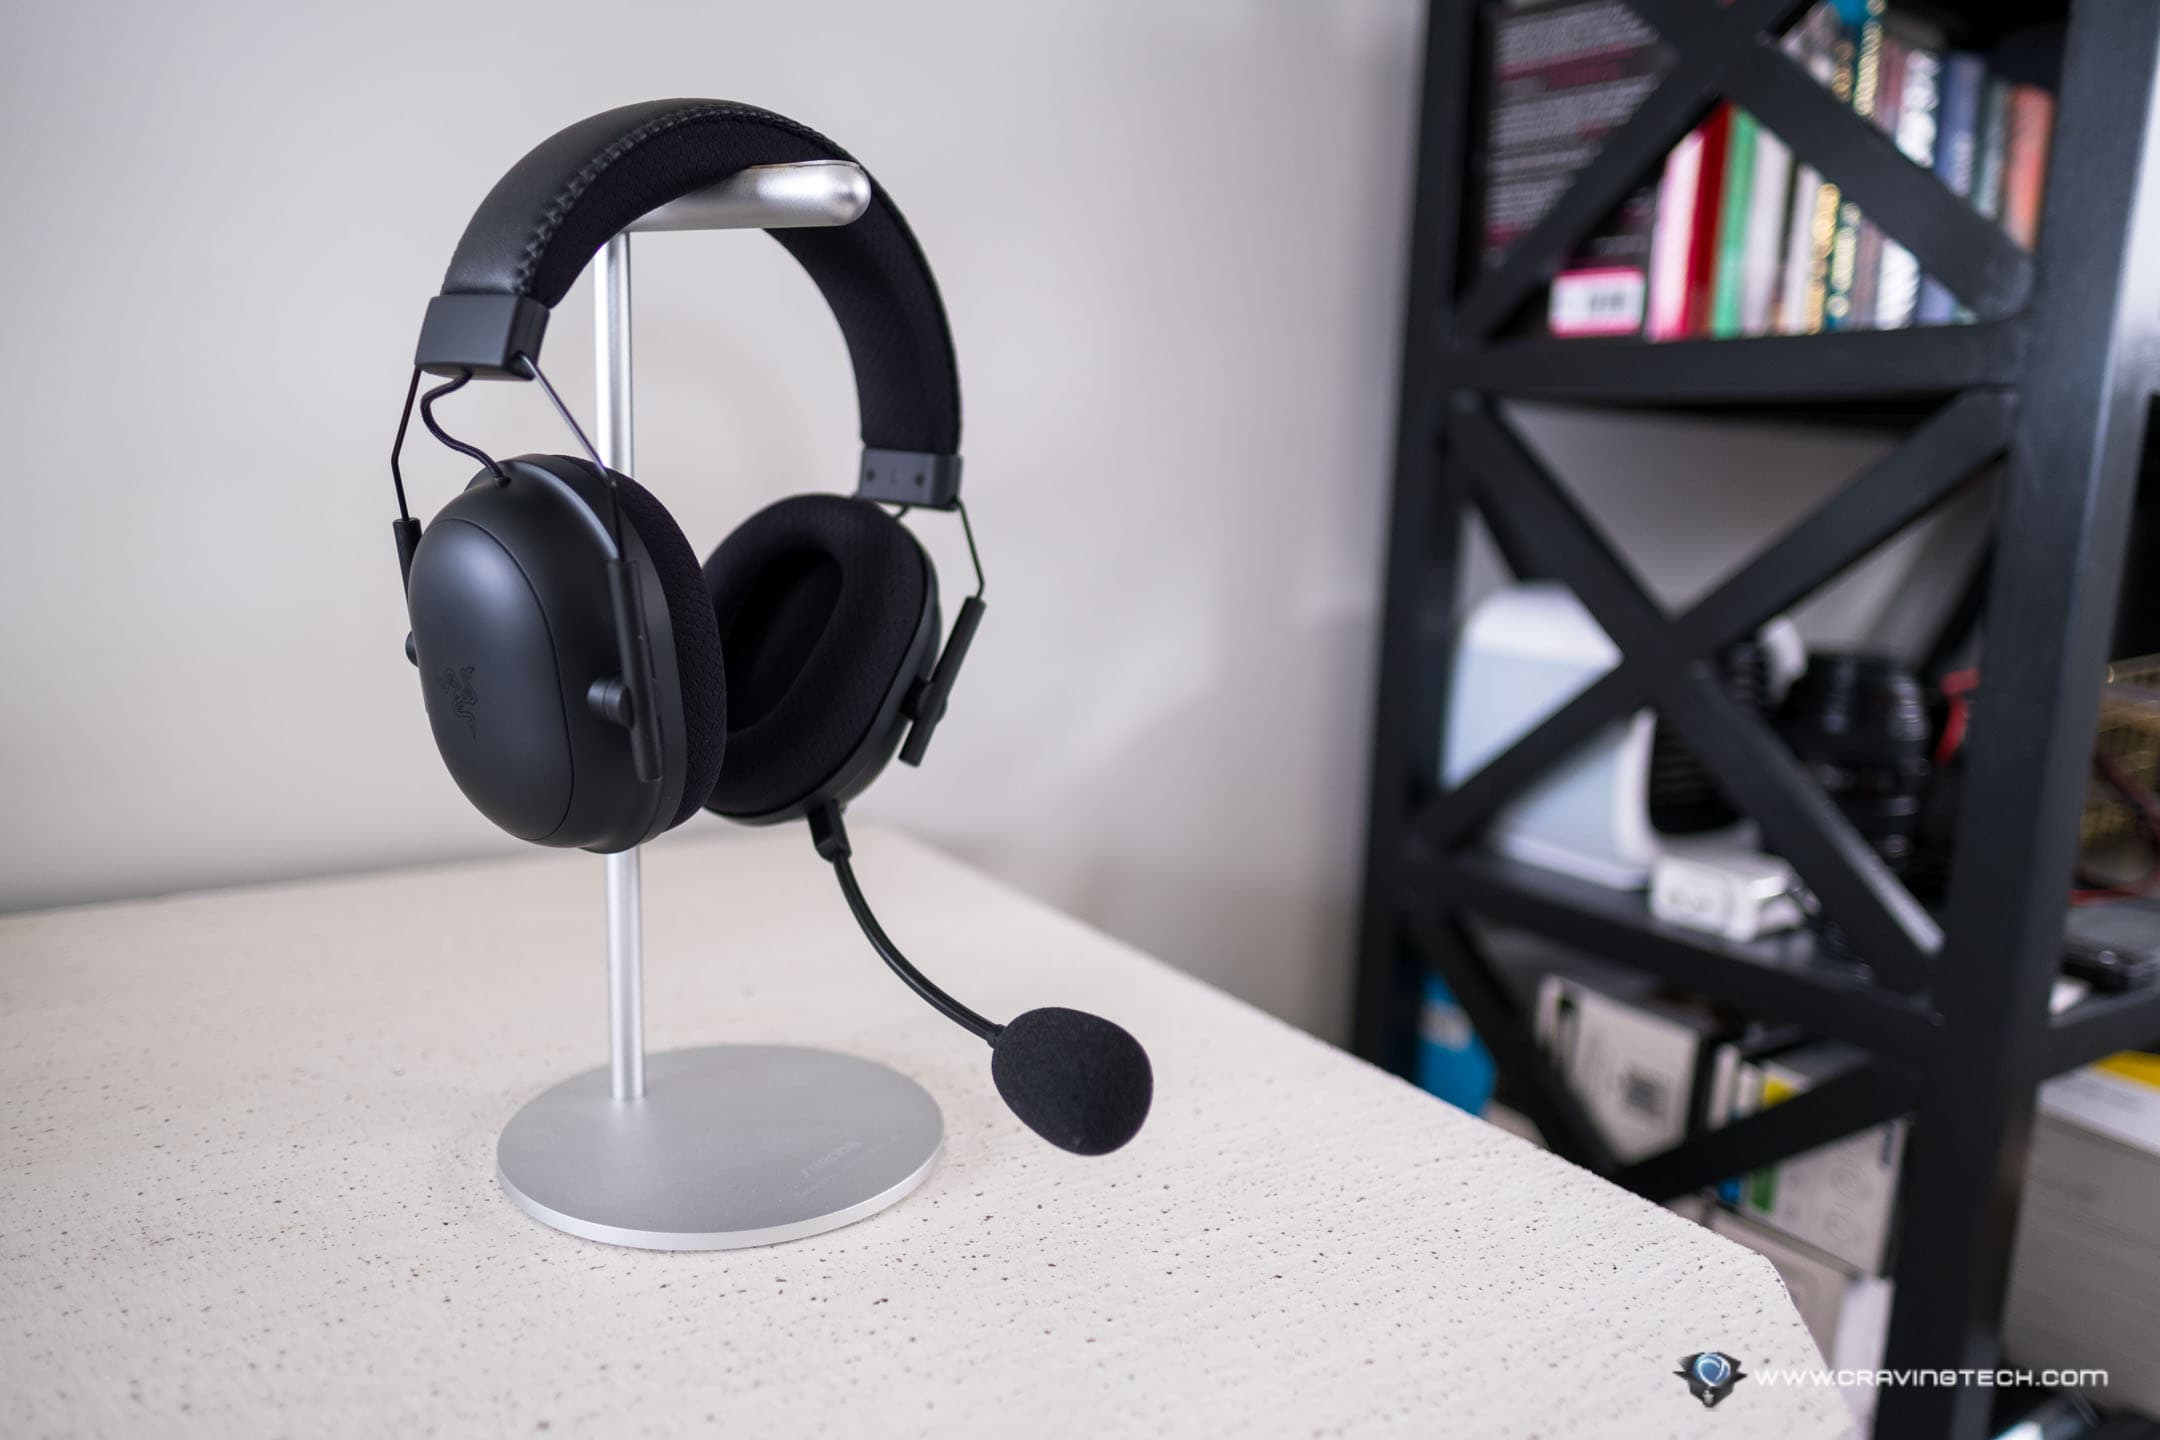 esport-worthy Wireless Gaming Headset? Razer BlackShark V2 Pro Review